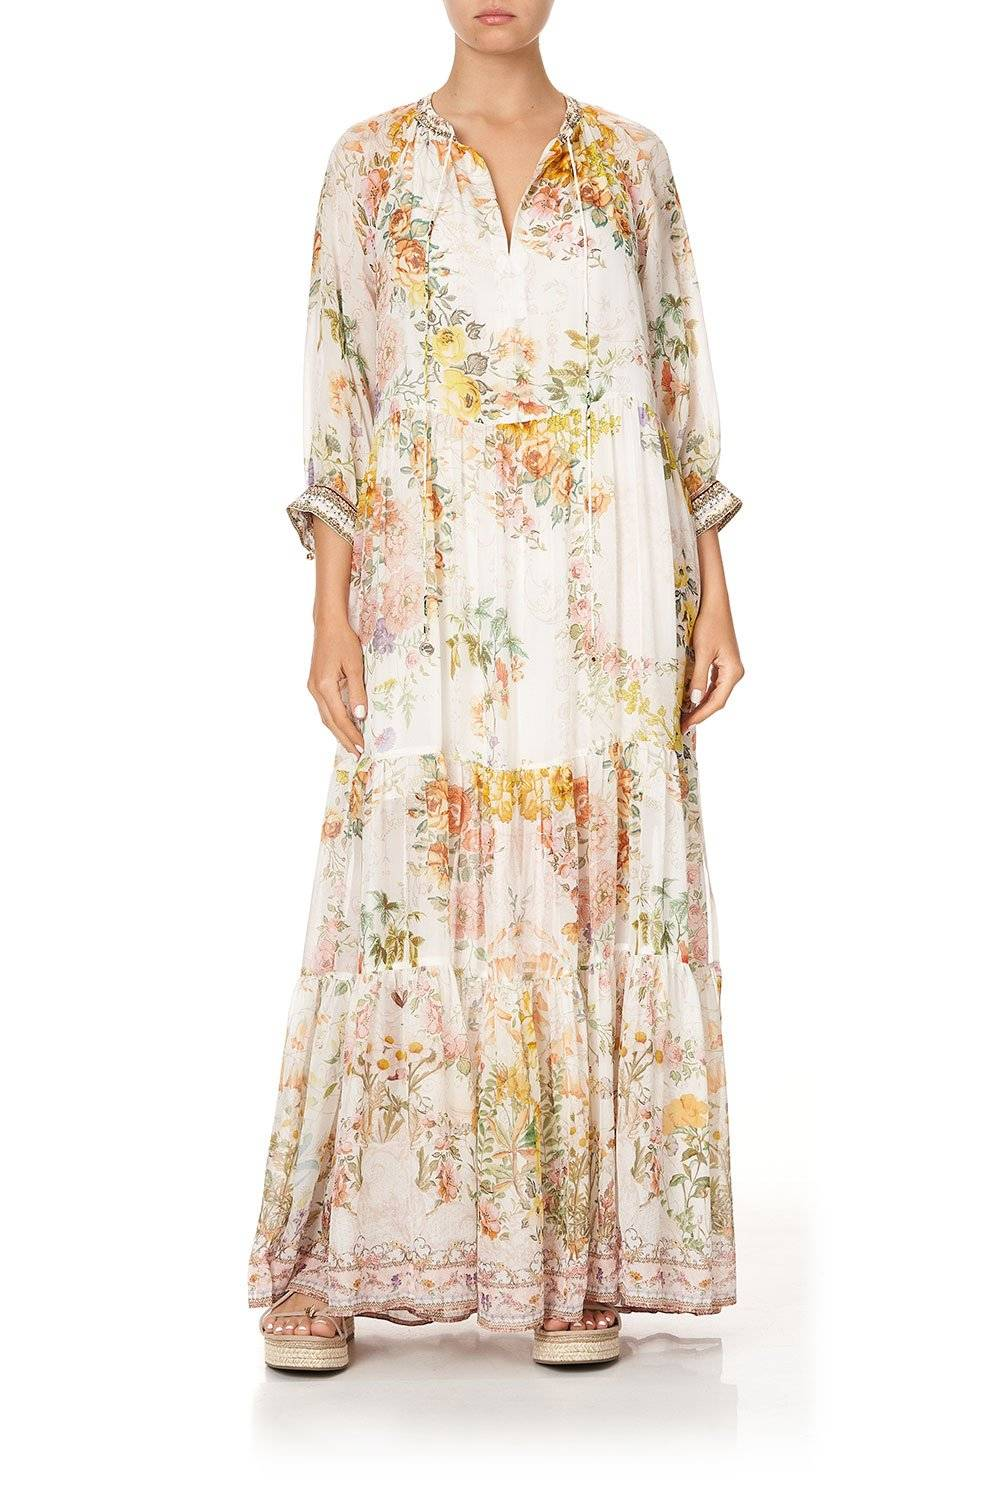 IN THE HILLS OF TUSCANY LONG GATHERED PANEL DRESS